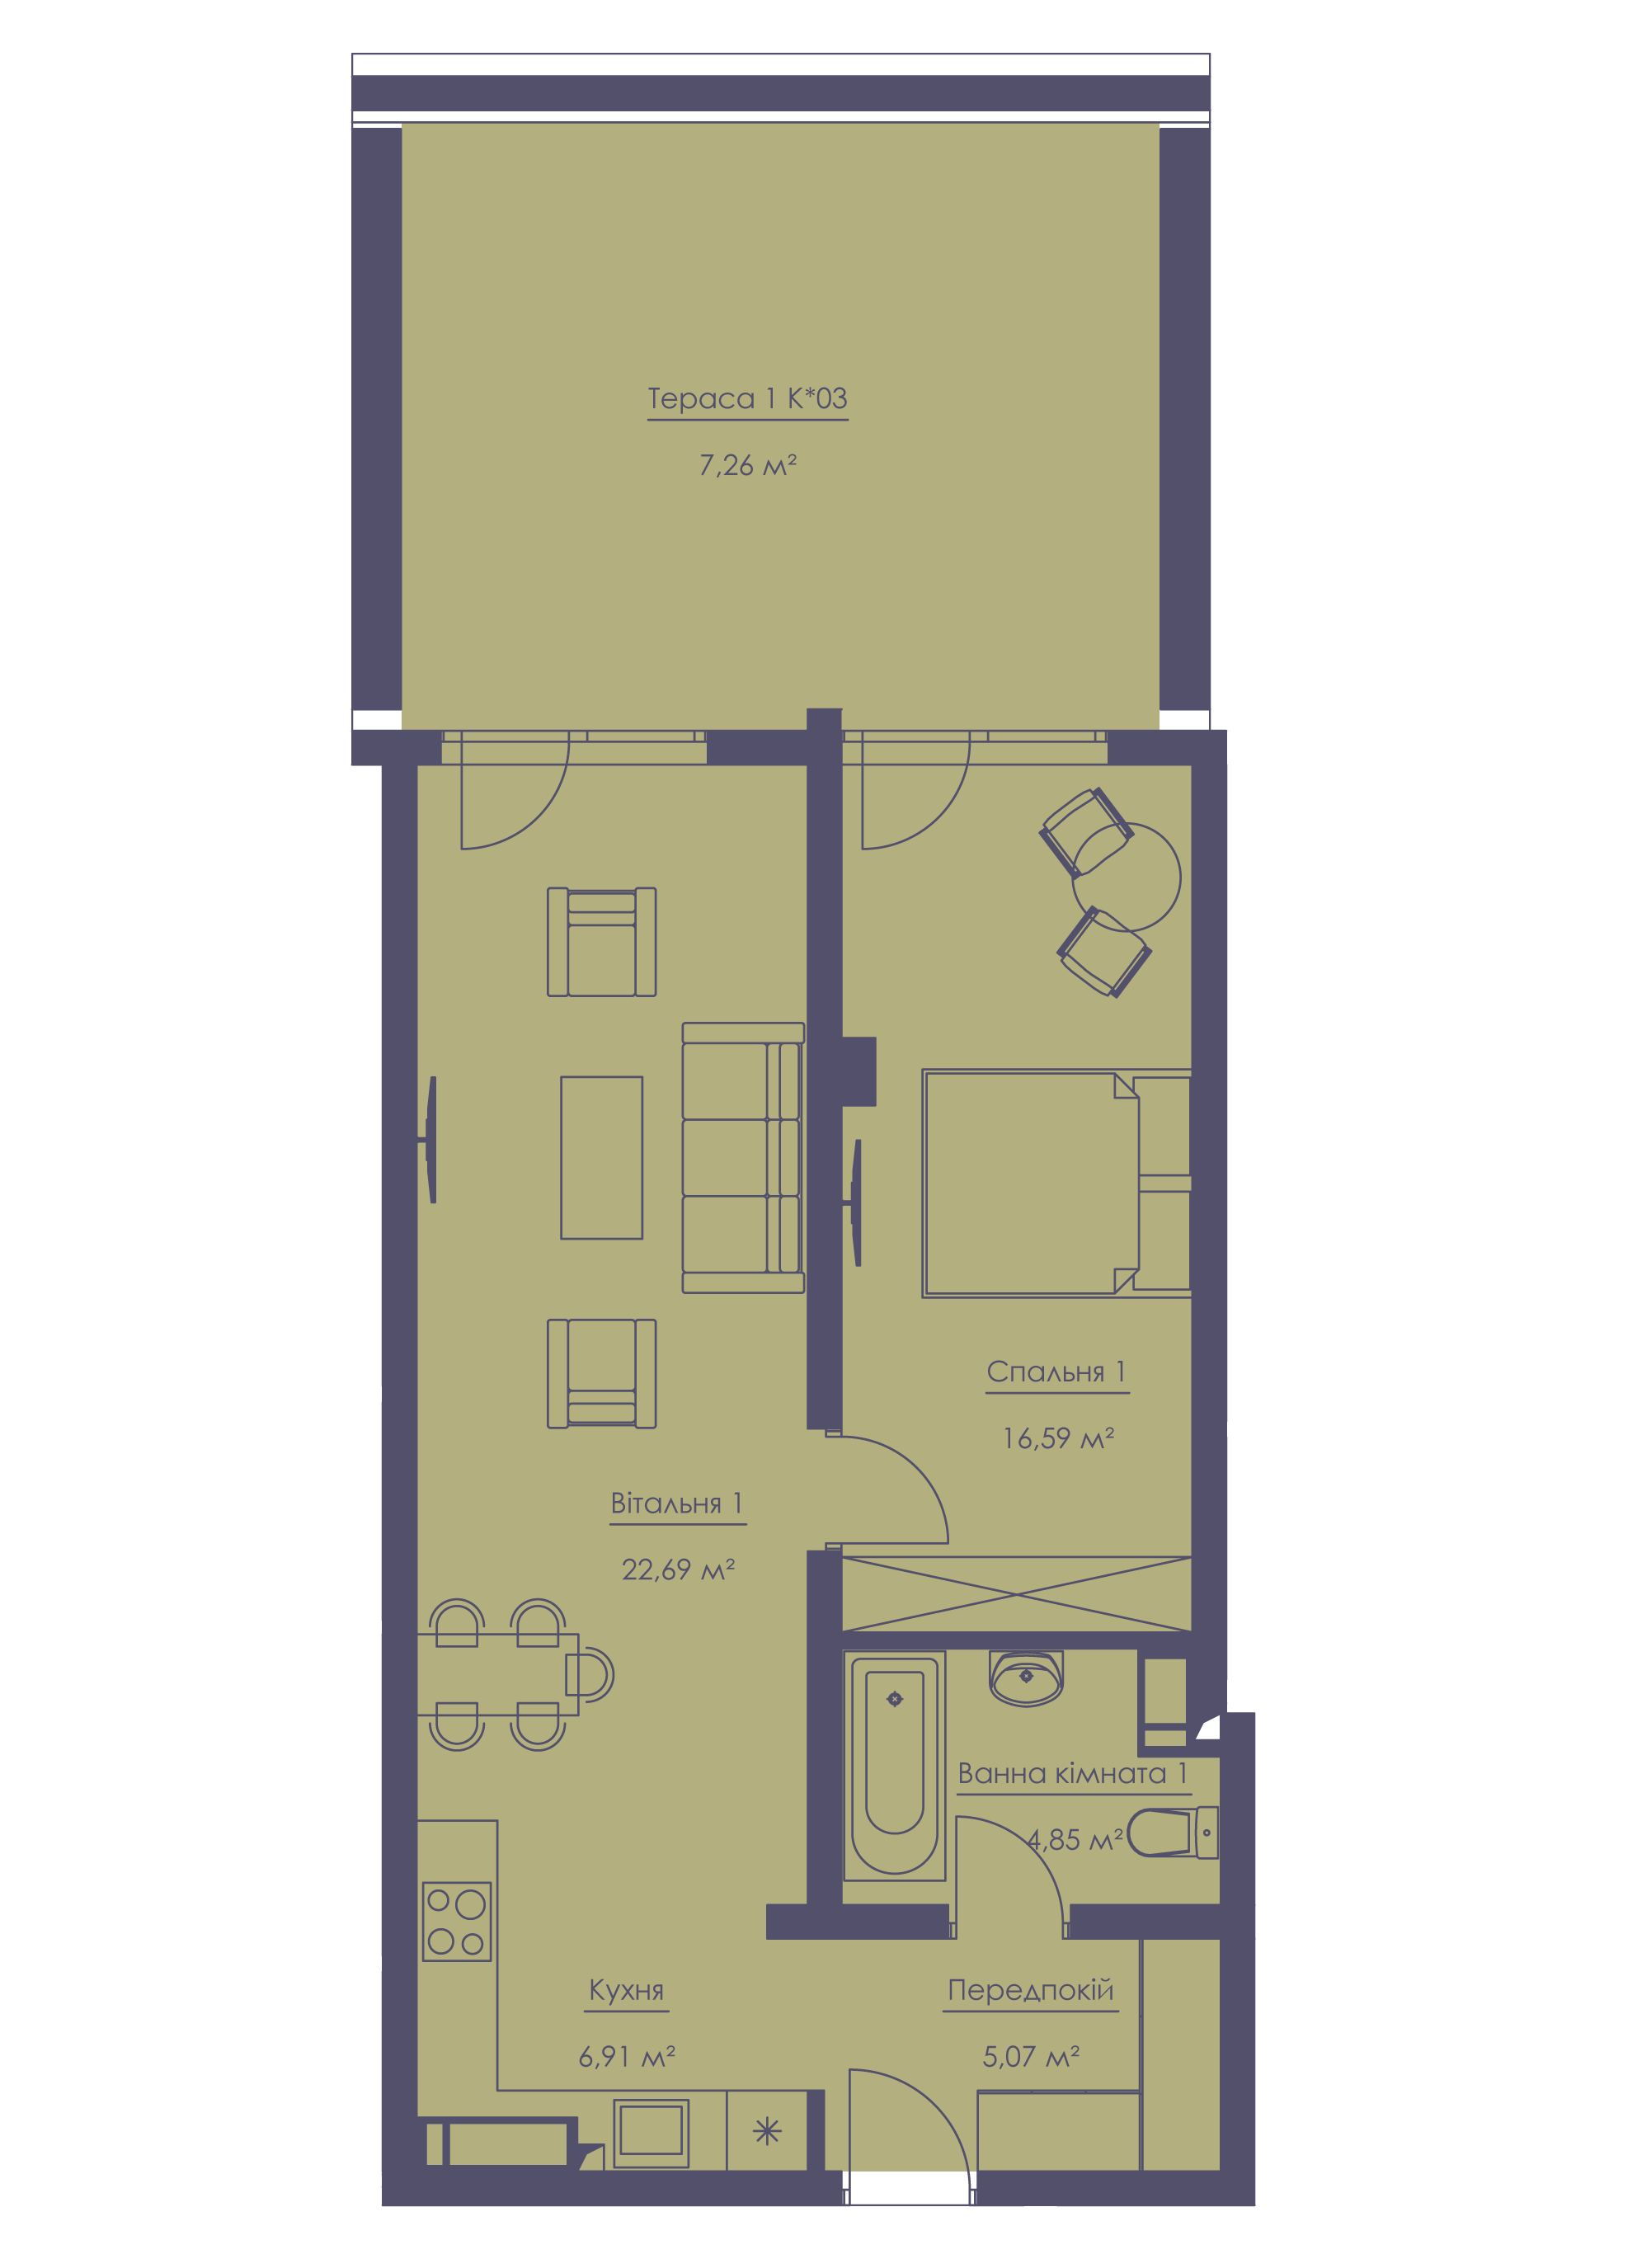 Apartment layout KV_10_1.2k_1_1_10-1